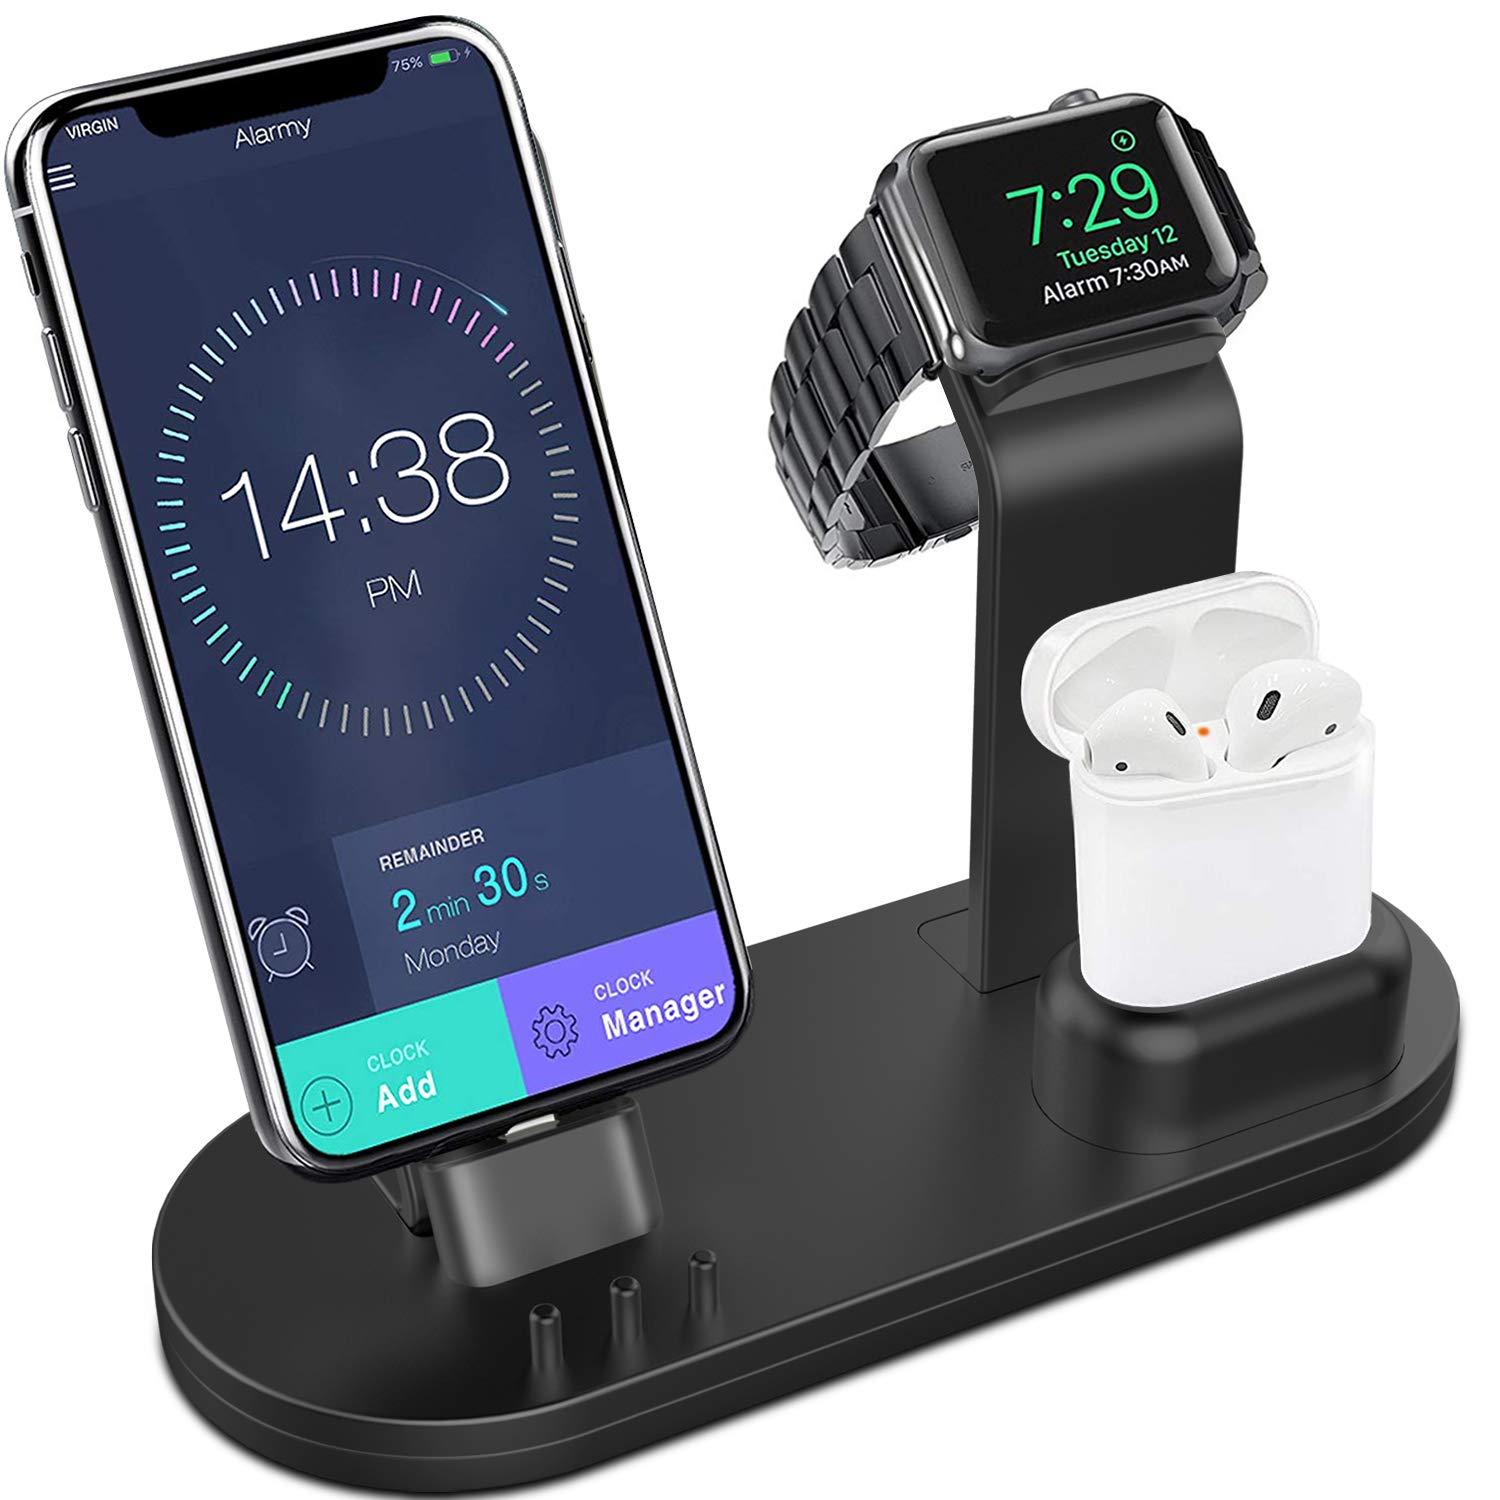 Yestan 3 in 1 Charging Stand Compatible for iWatch Series 4/3/2/1, AirPods and iPhone Xs/X Max/XR/X/8/8Plus/7/7 Plus /6S /6S Plus/9.7 inches iPad (Original Charger & Cables Required) -Black